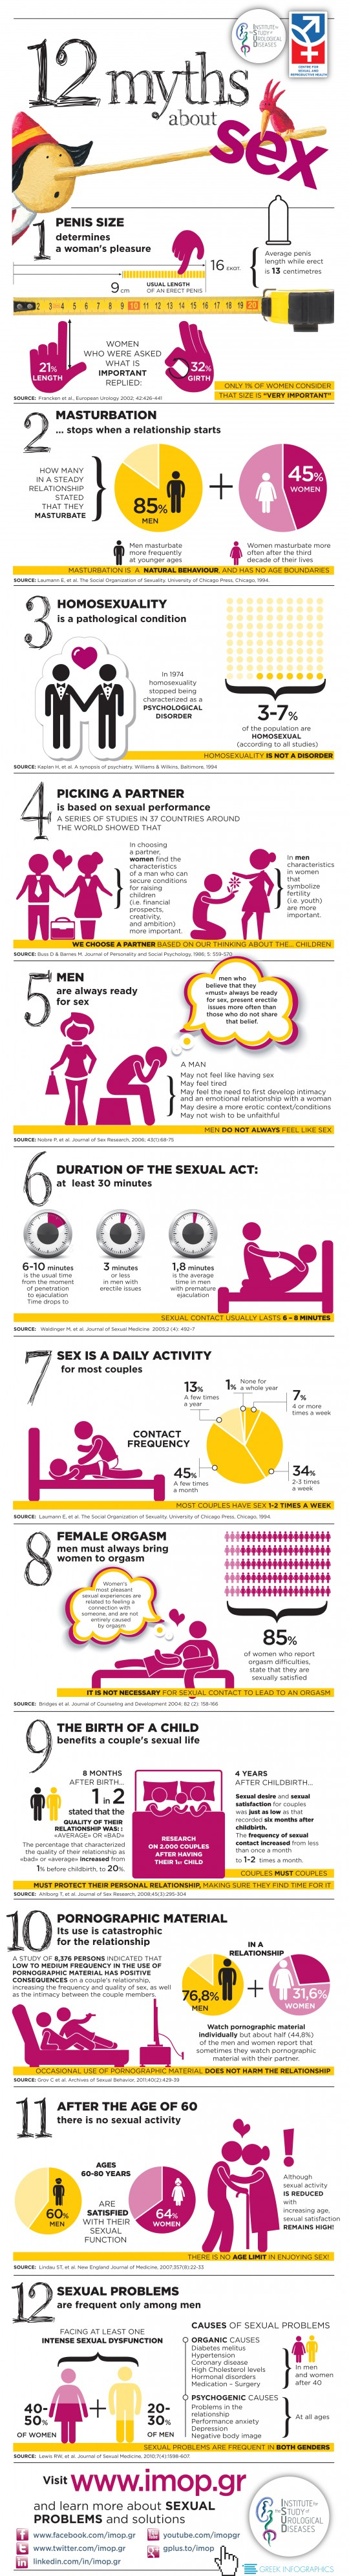 Getting the Facts Right: Correcting Untruths About Sex - Infographic